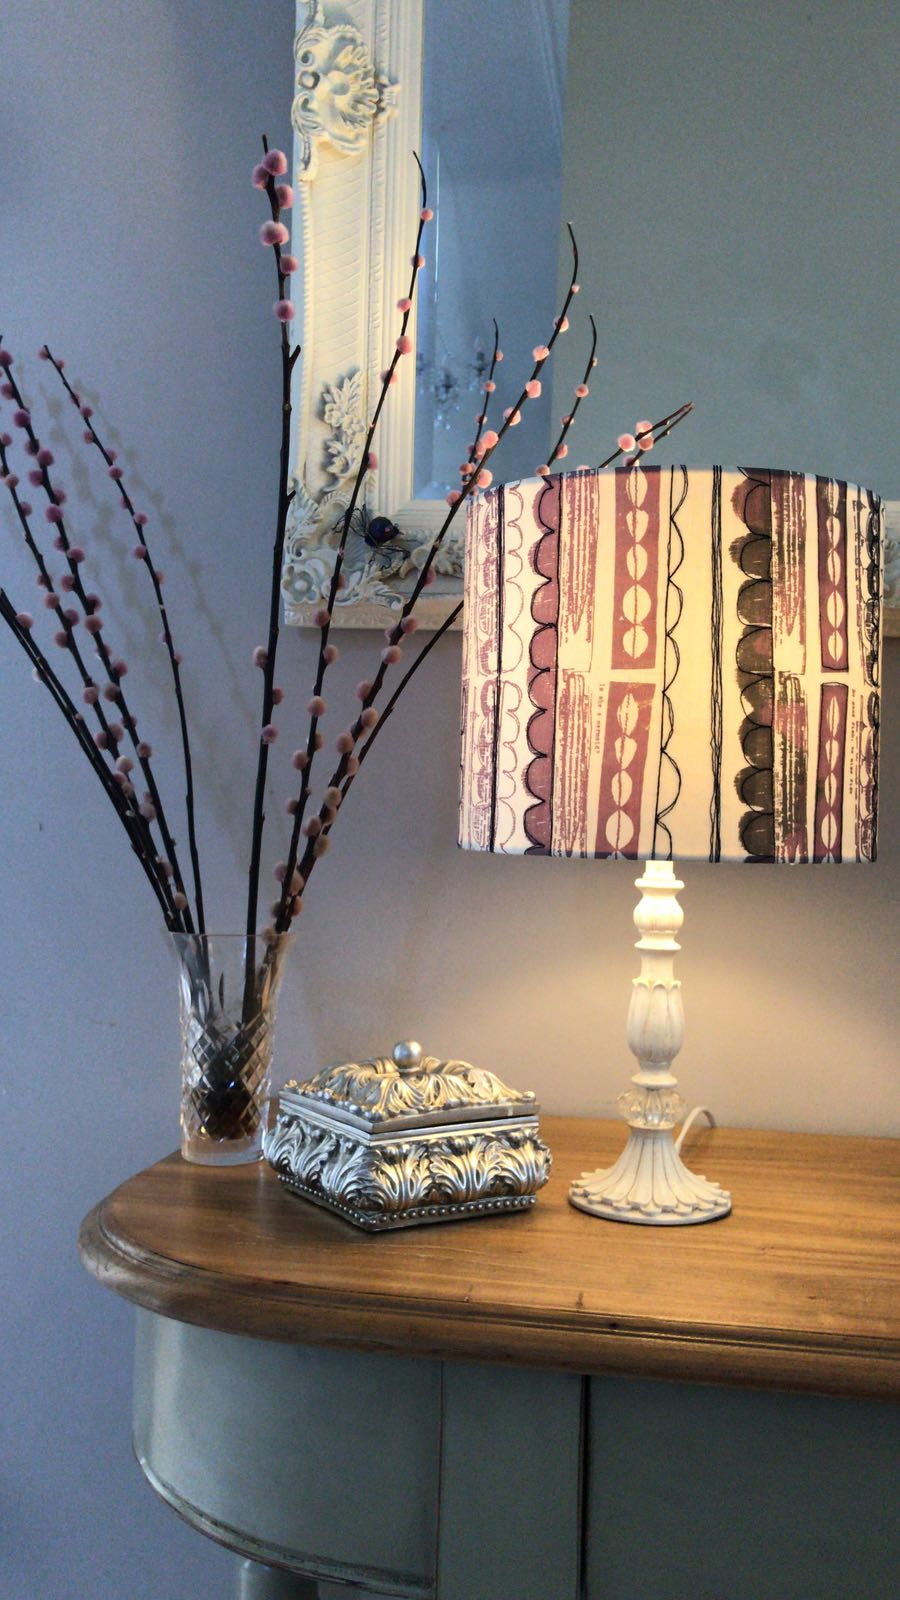 handmade lampshade, sewing retreat, devon, Totnes, Sewing, Lampshade